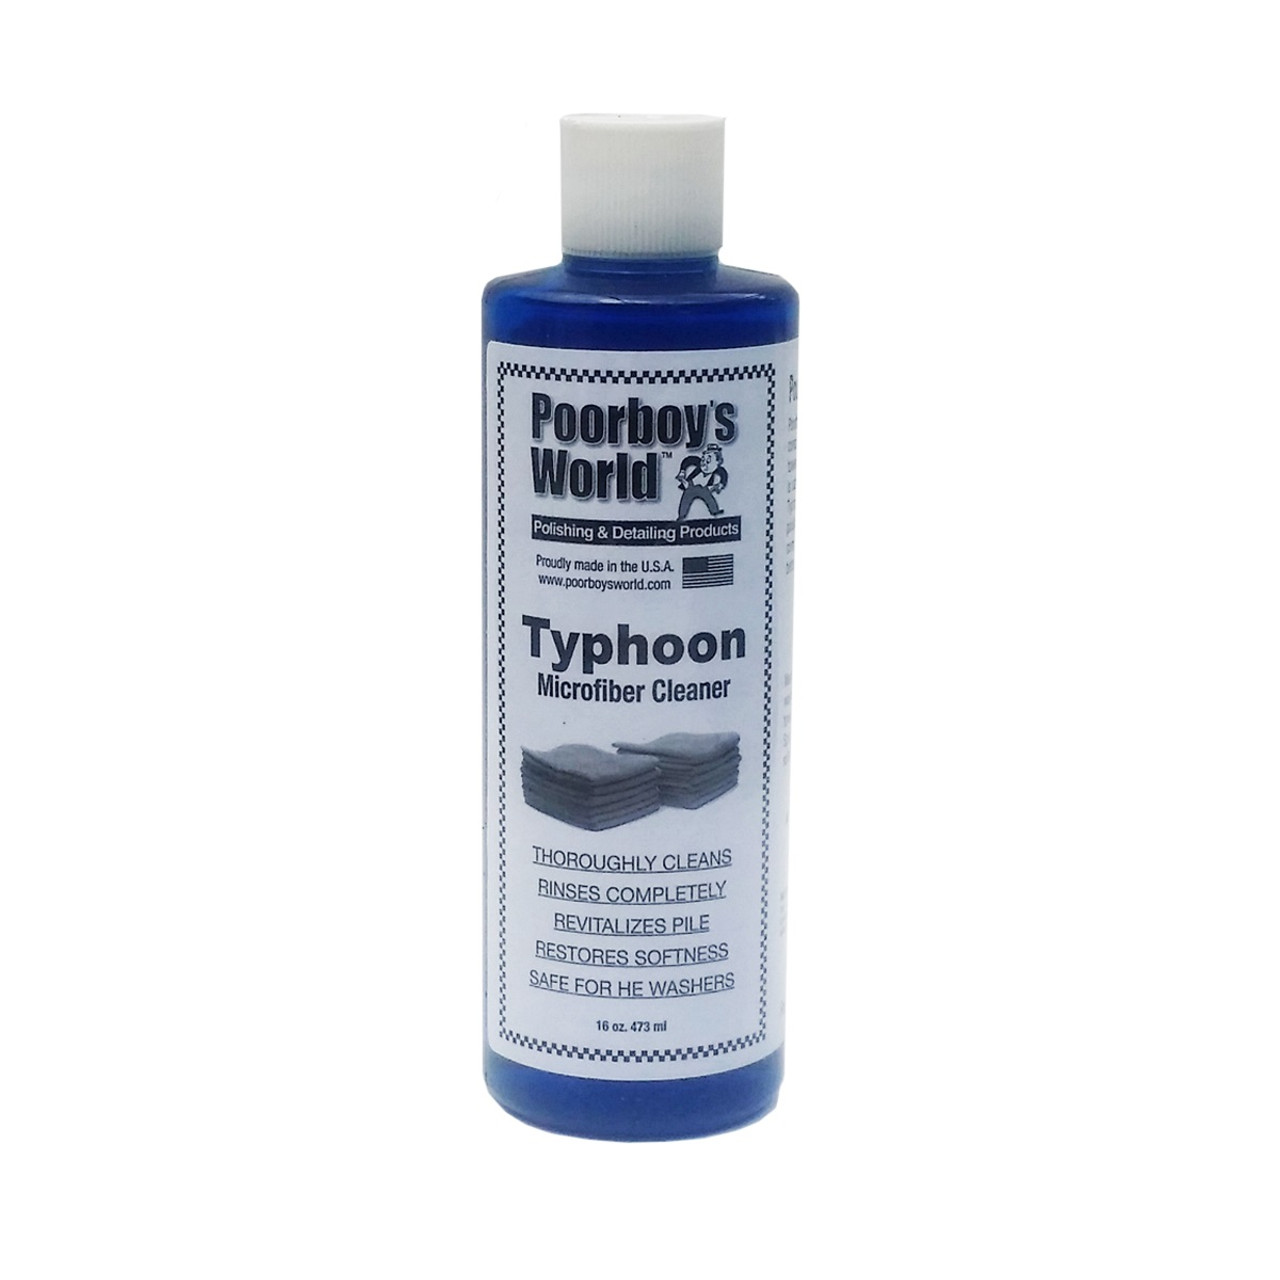 Poorboy's World Typhoon Microfiber Cleaner 16oz